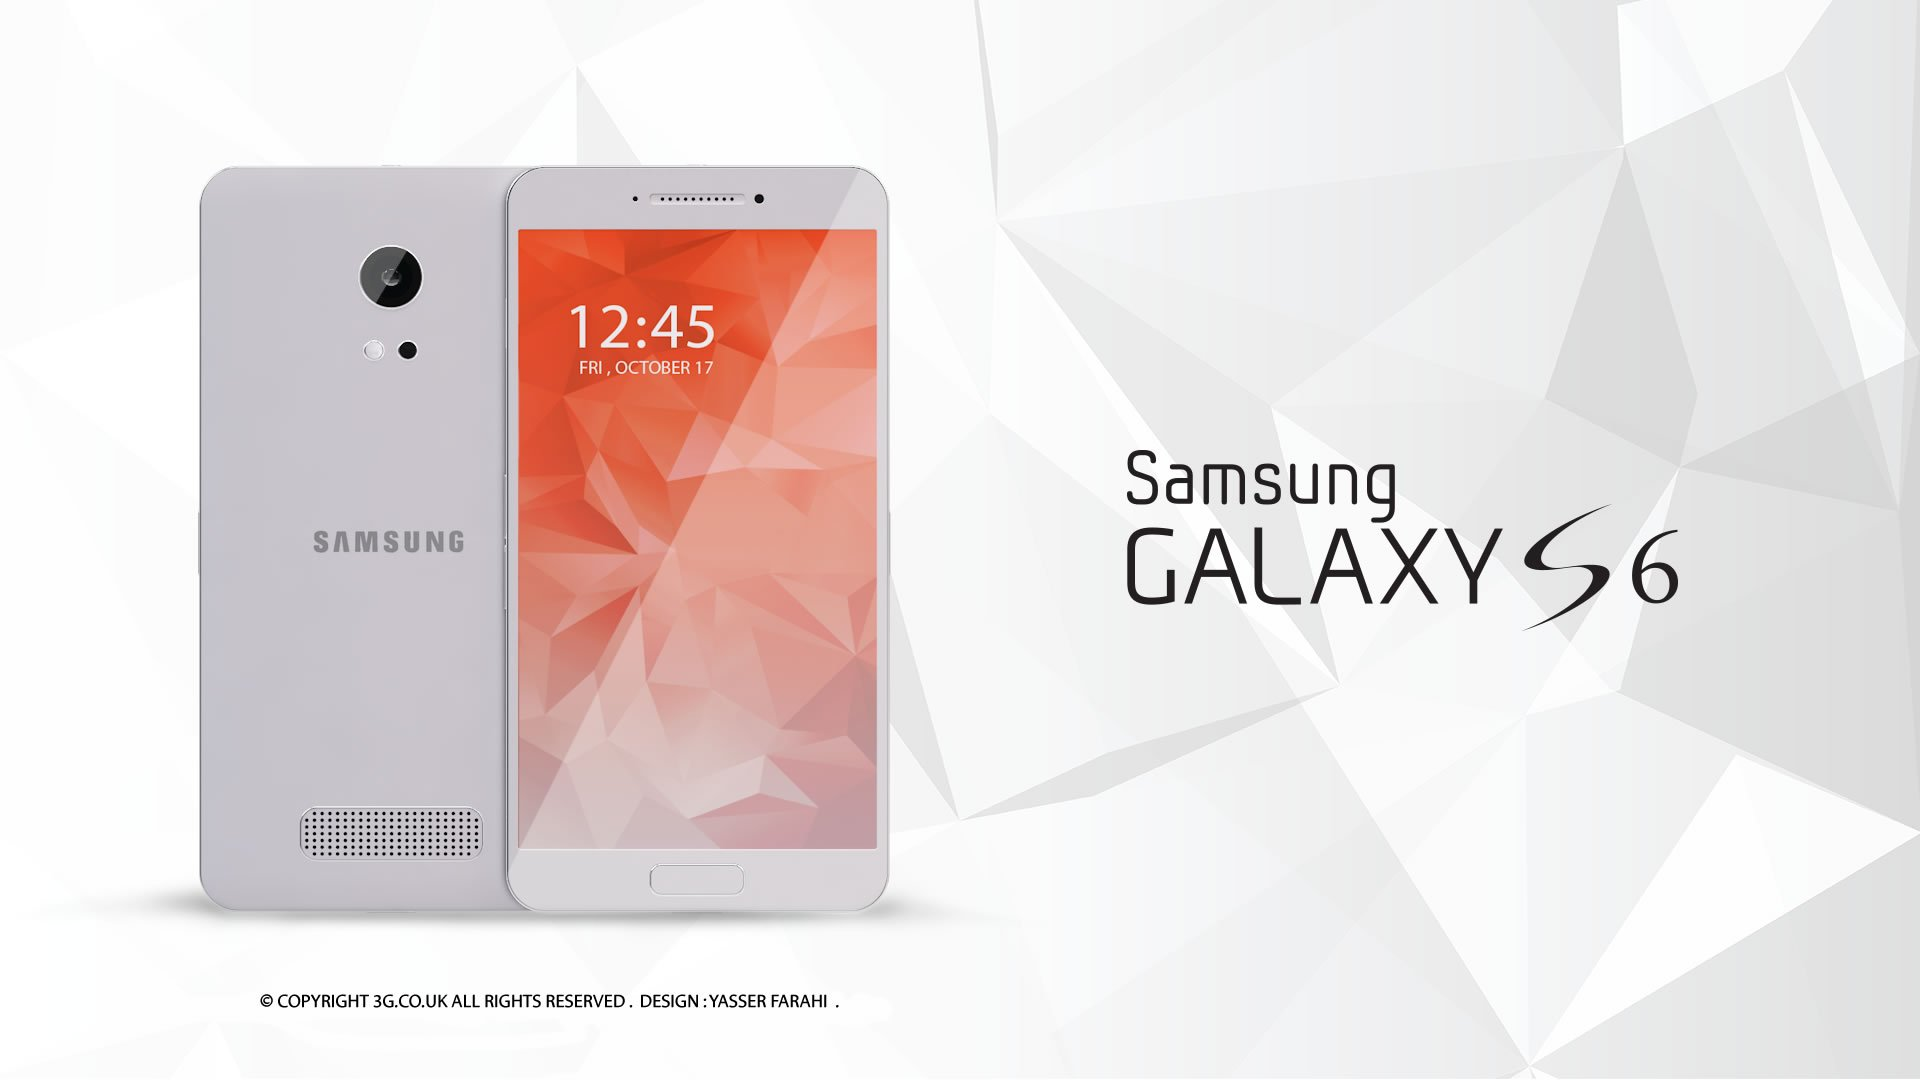 samsung galaxy s6 specification price and realse date featured